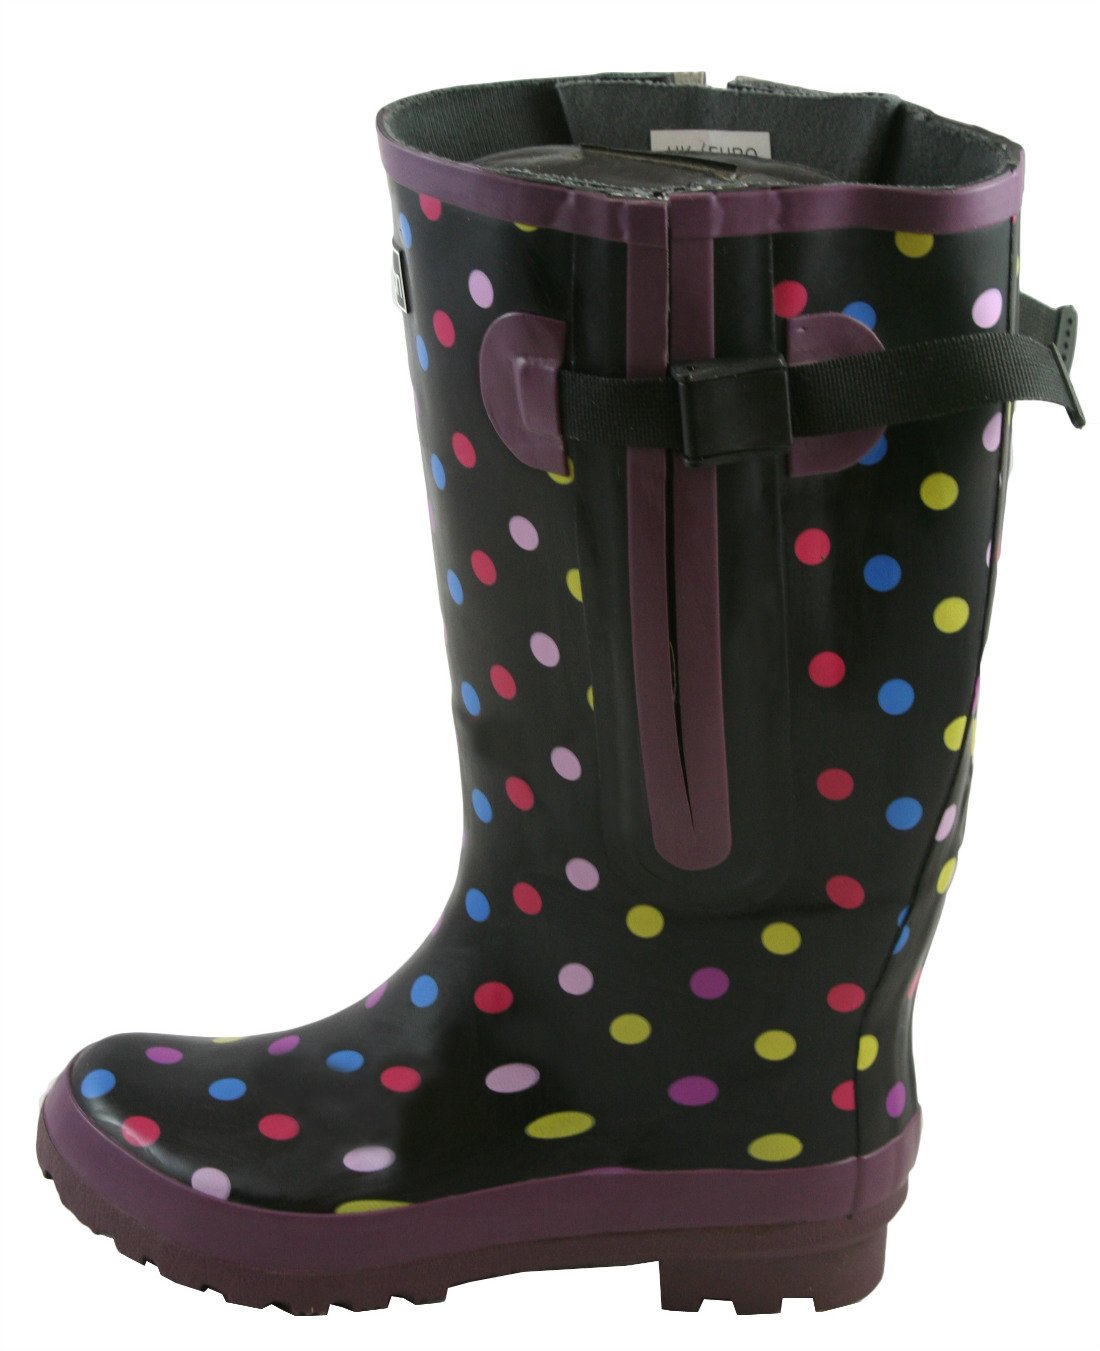 Jileon Extra Wide Calf Rubber Rain Boots for Women-Widest Fit Boots in The US-up to 21 inch Calves-Wide in The Foot and Ankle B006C1QW94 10 E (Extra Wide) US|Black With Polka Dots